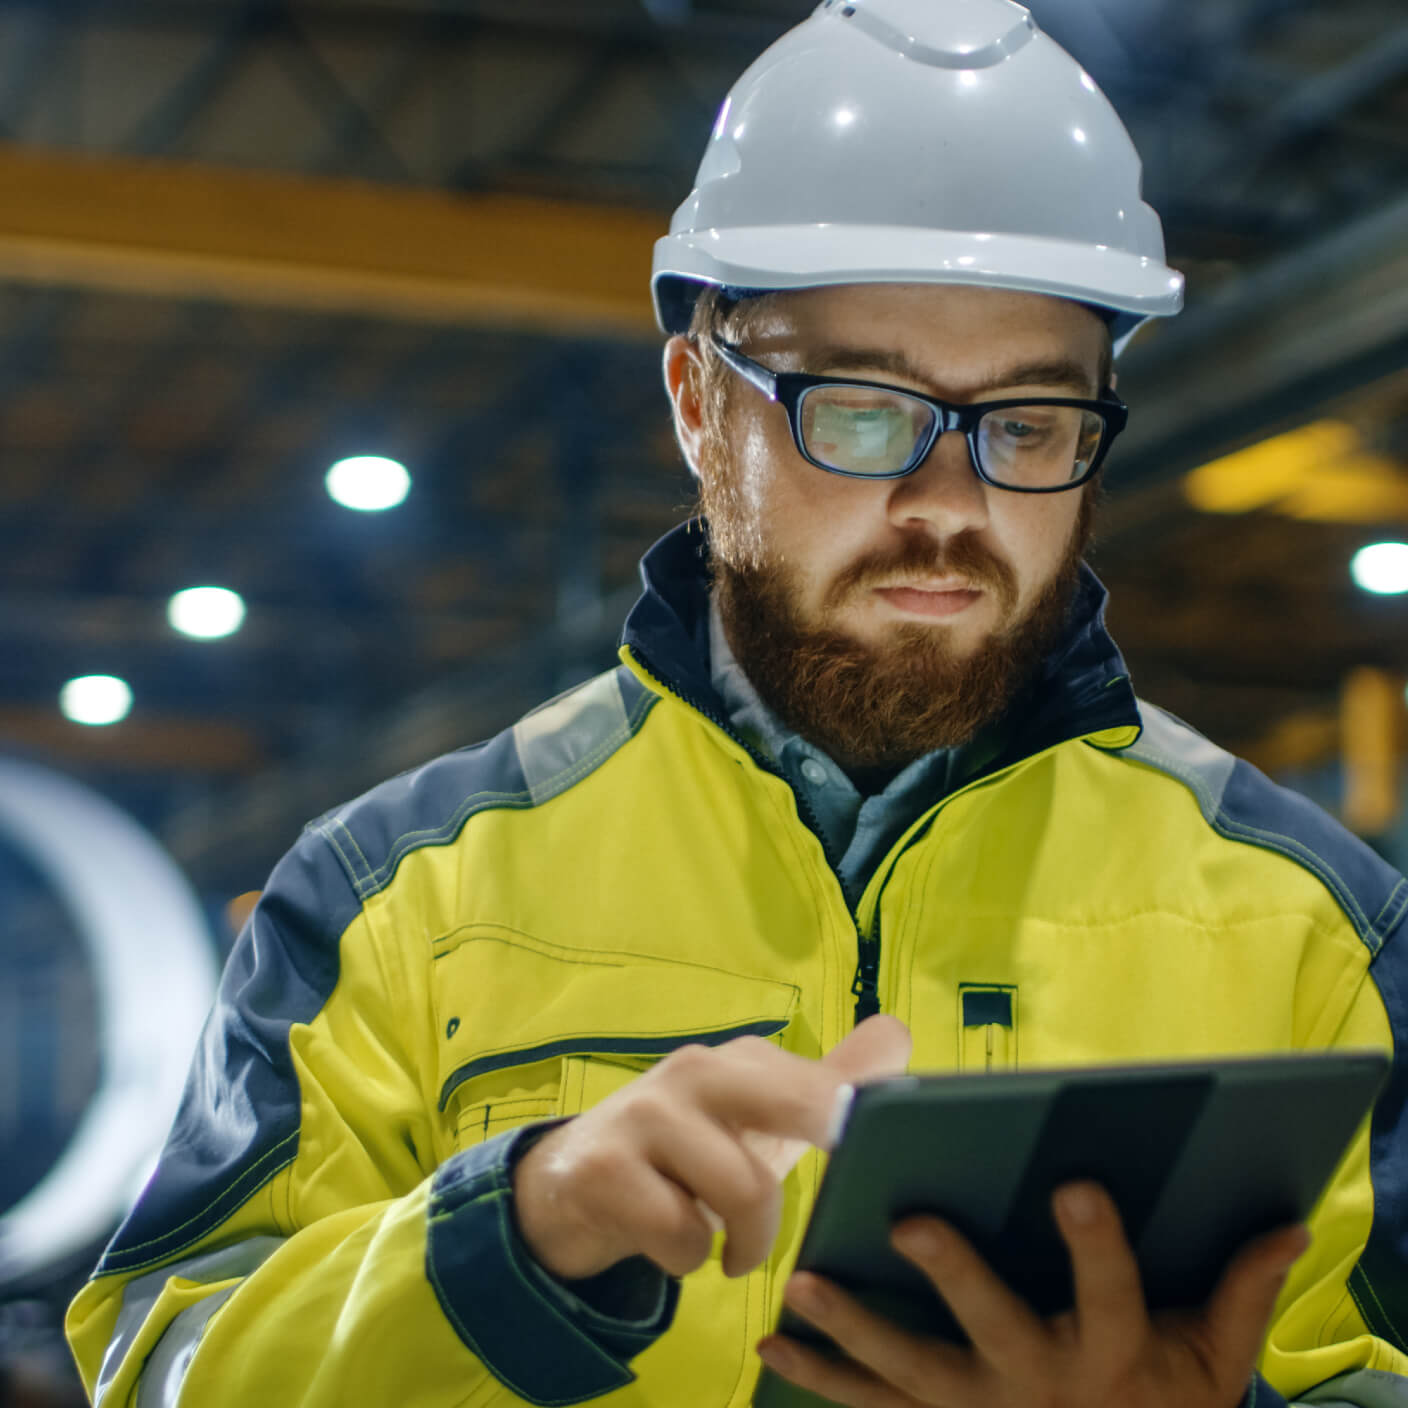 Engineer in a hardhat using an ipad